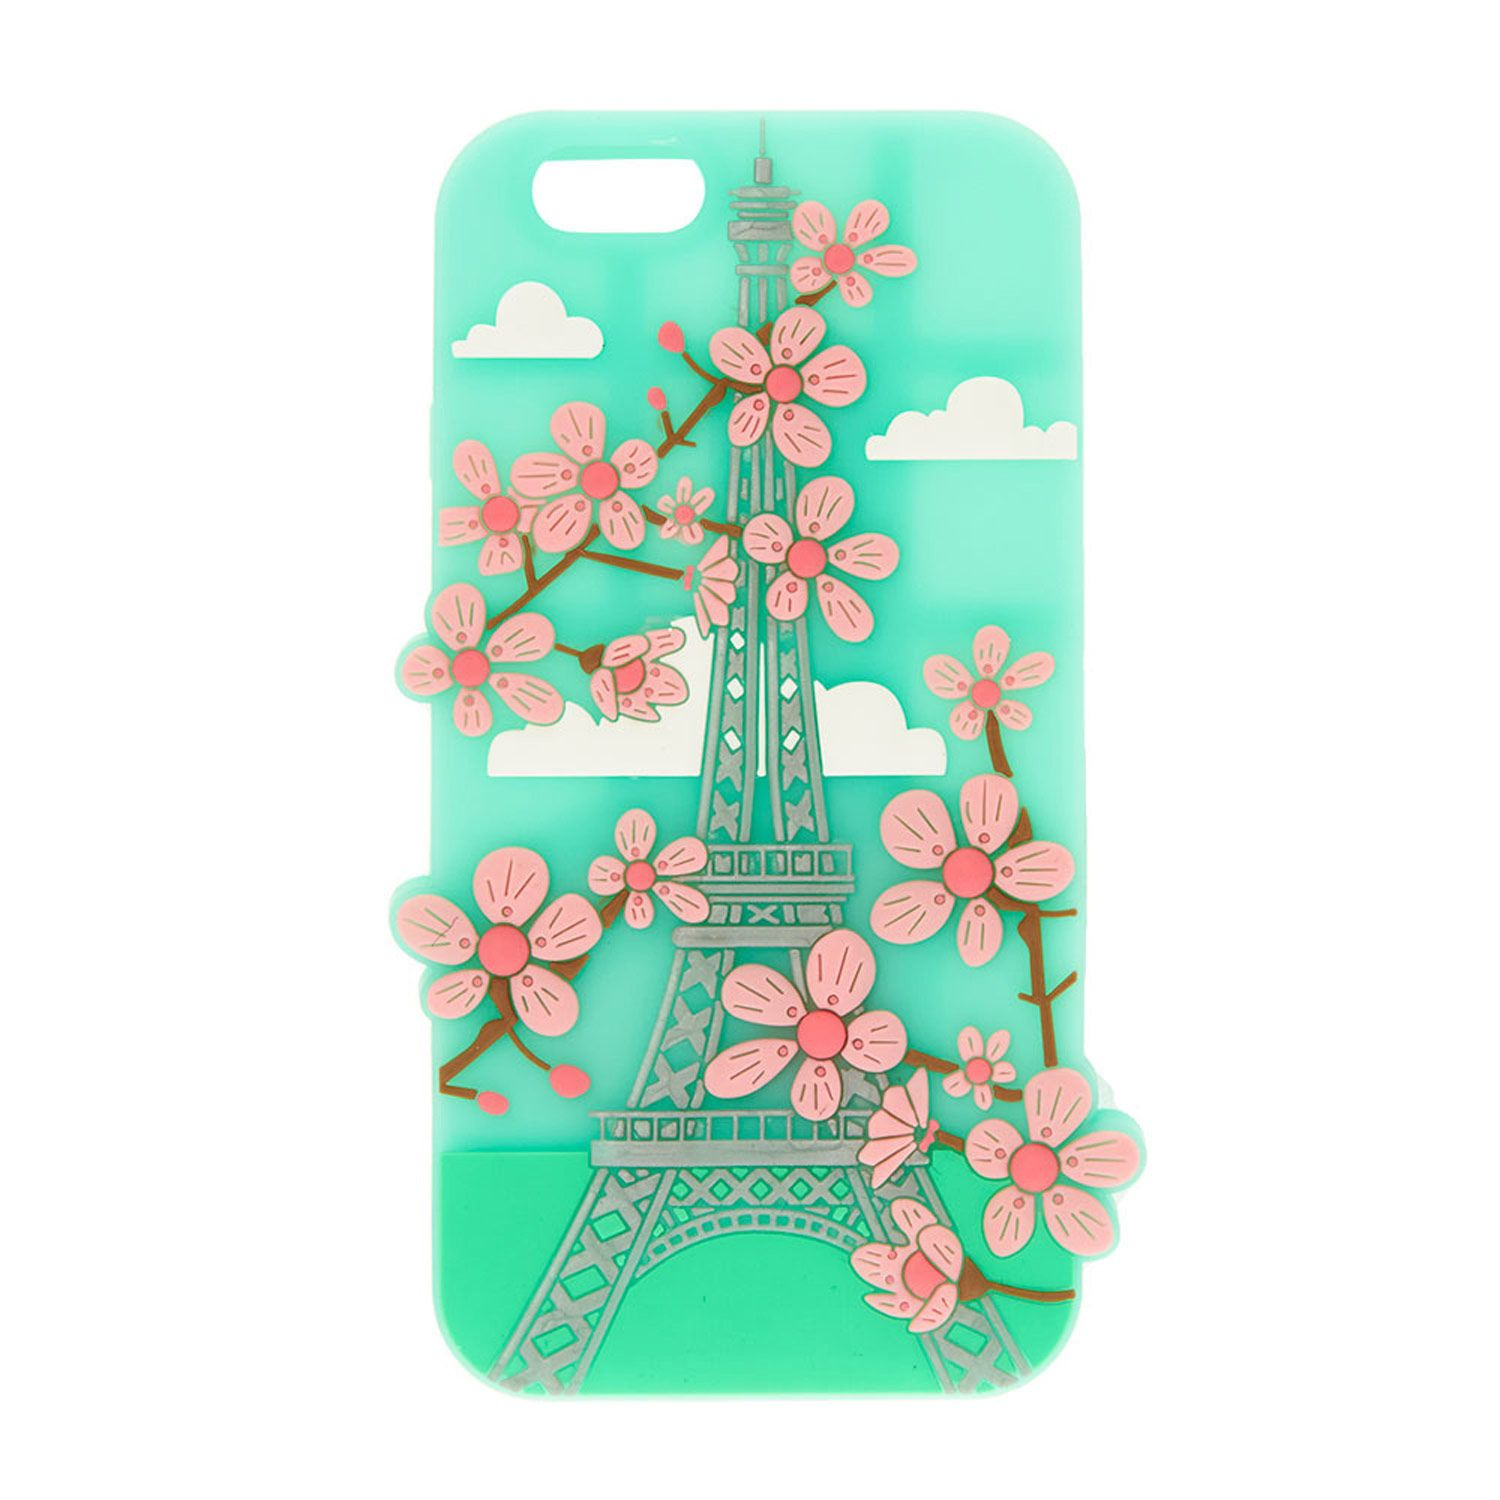 pinterest diy pin your decor to phone case how crafts iphone clever decorate